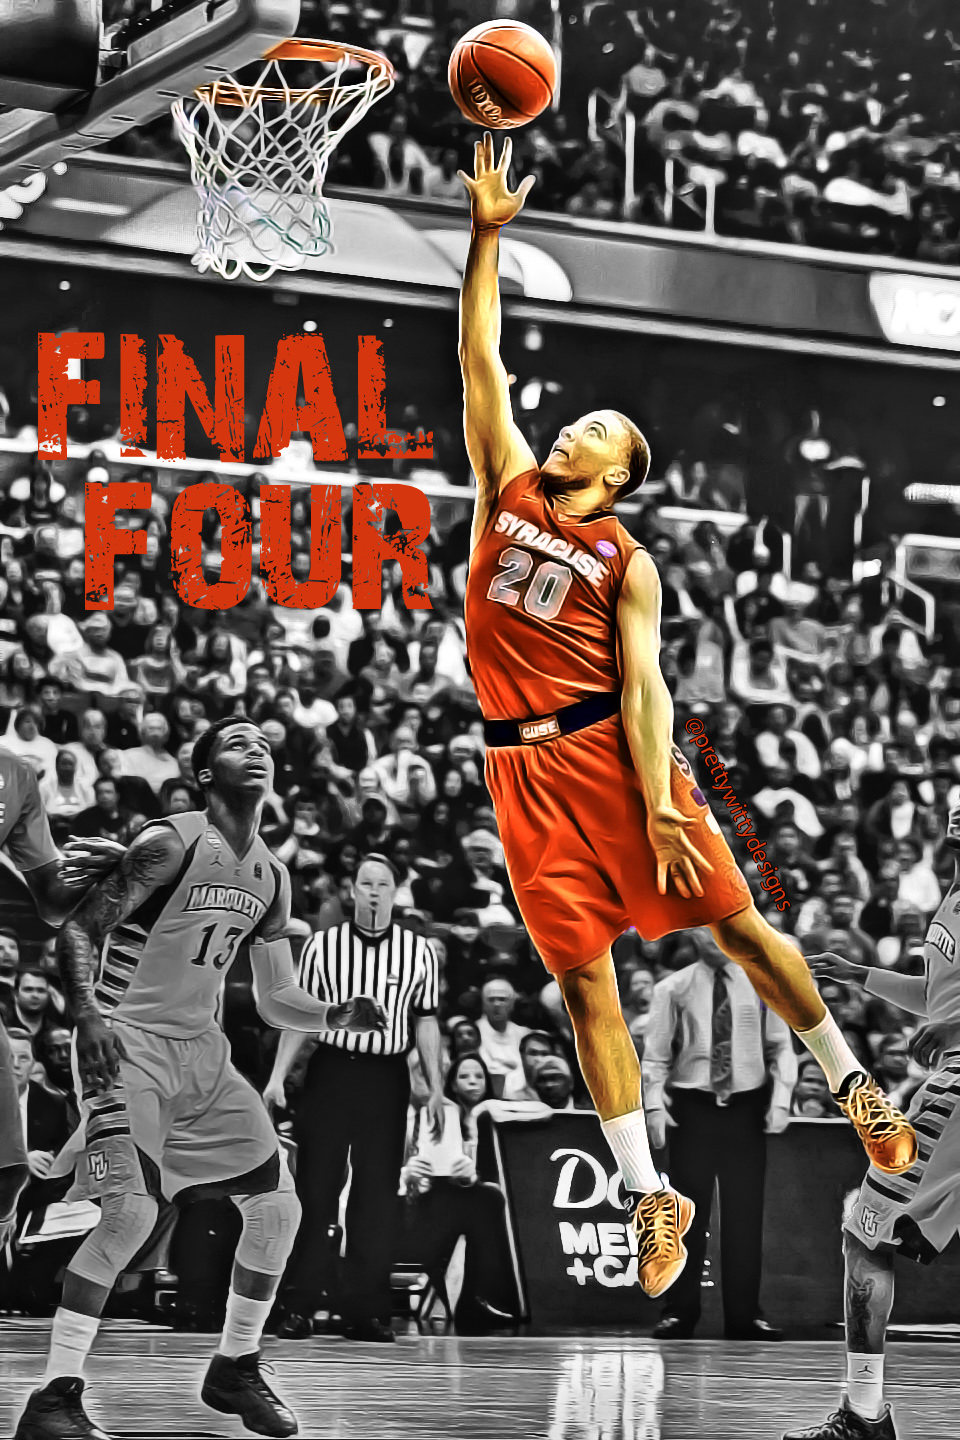 Pretty Witty Designs Sports Graphics Final Four Photo